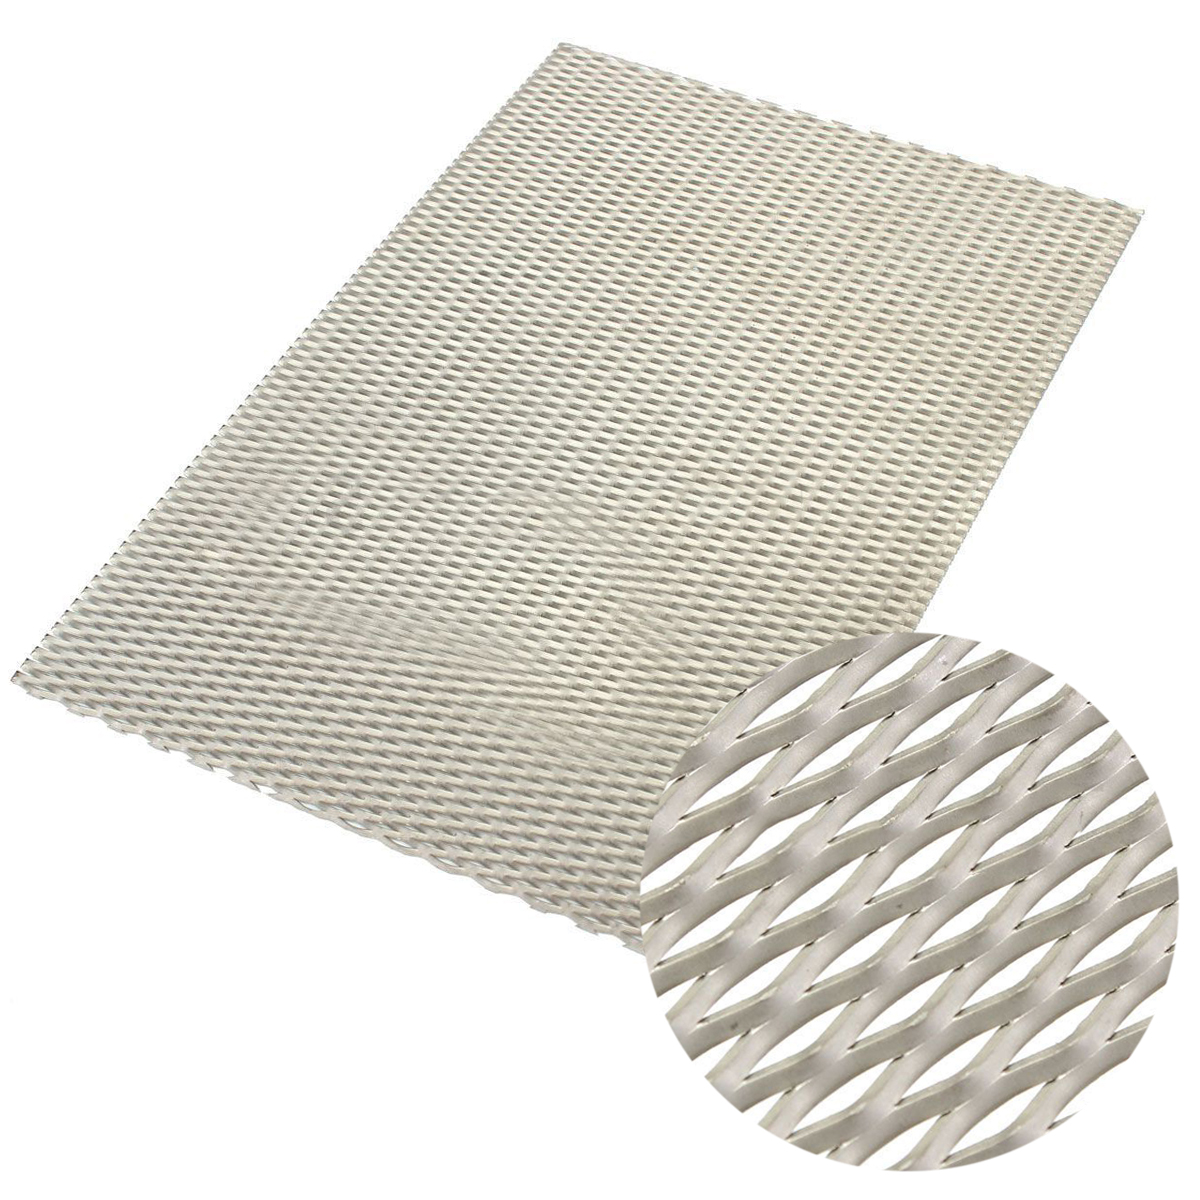 1pc Practical Titanium Mesh Sheet Perforated Plate Expanded Mesh with Corrosion Resistance 200mmx300mmx0.5mm size 200 200 5mm teflon plate resistance high temperature work in degree celsius between 200 to 260 ptfe sheet